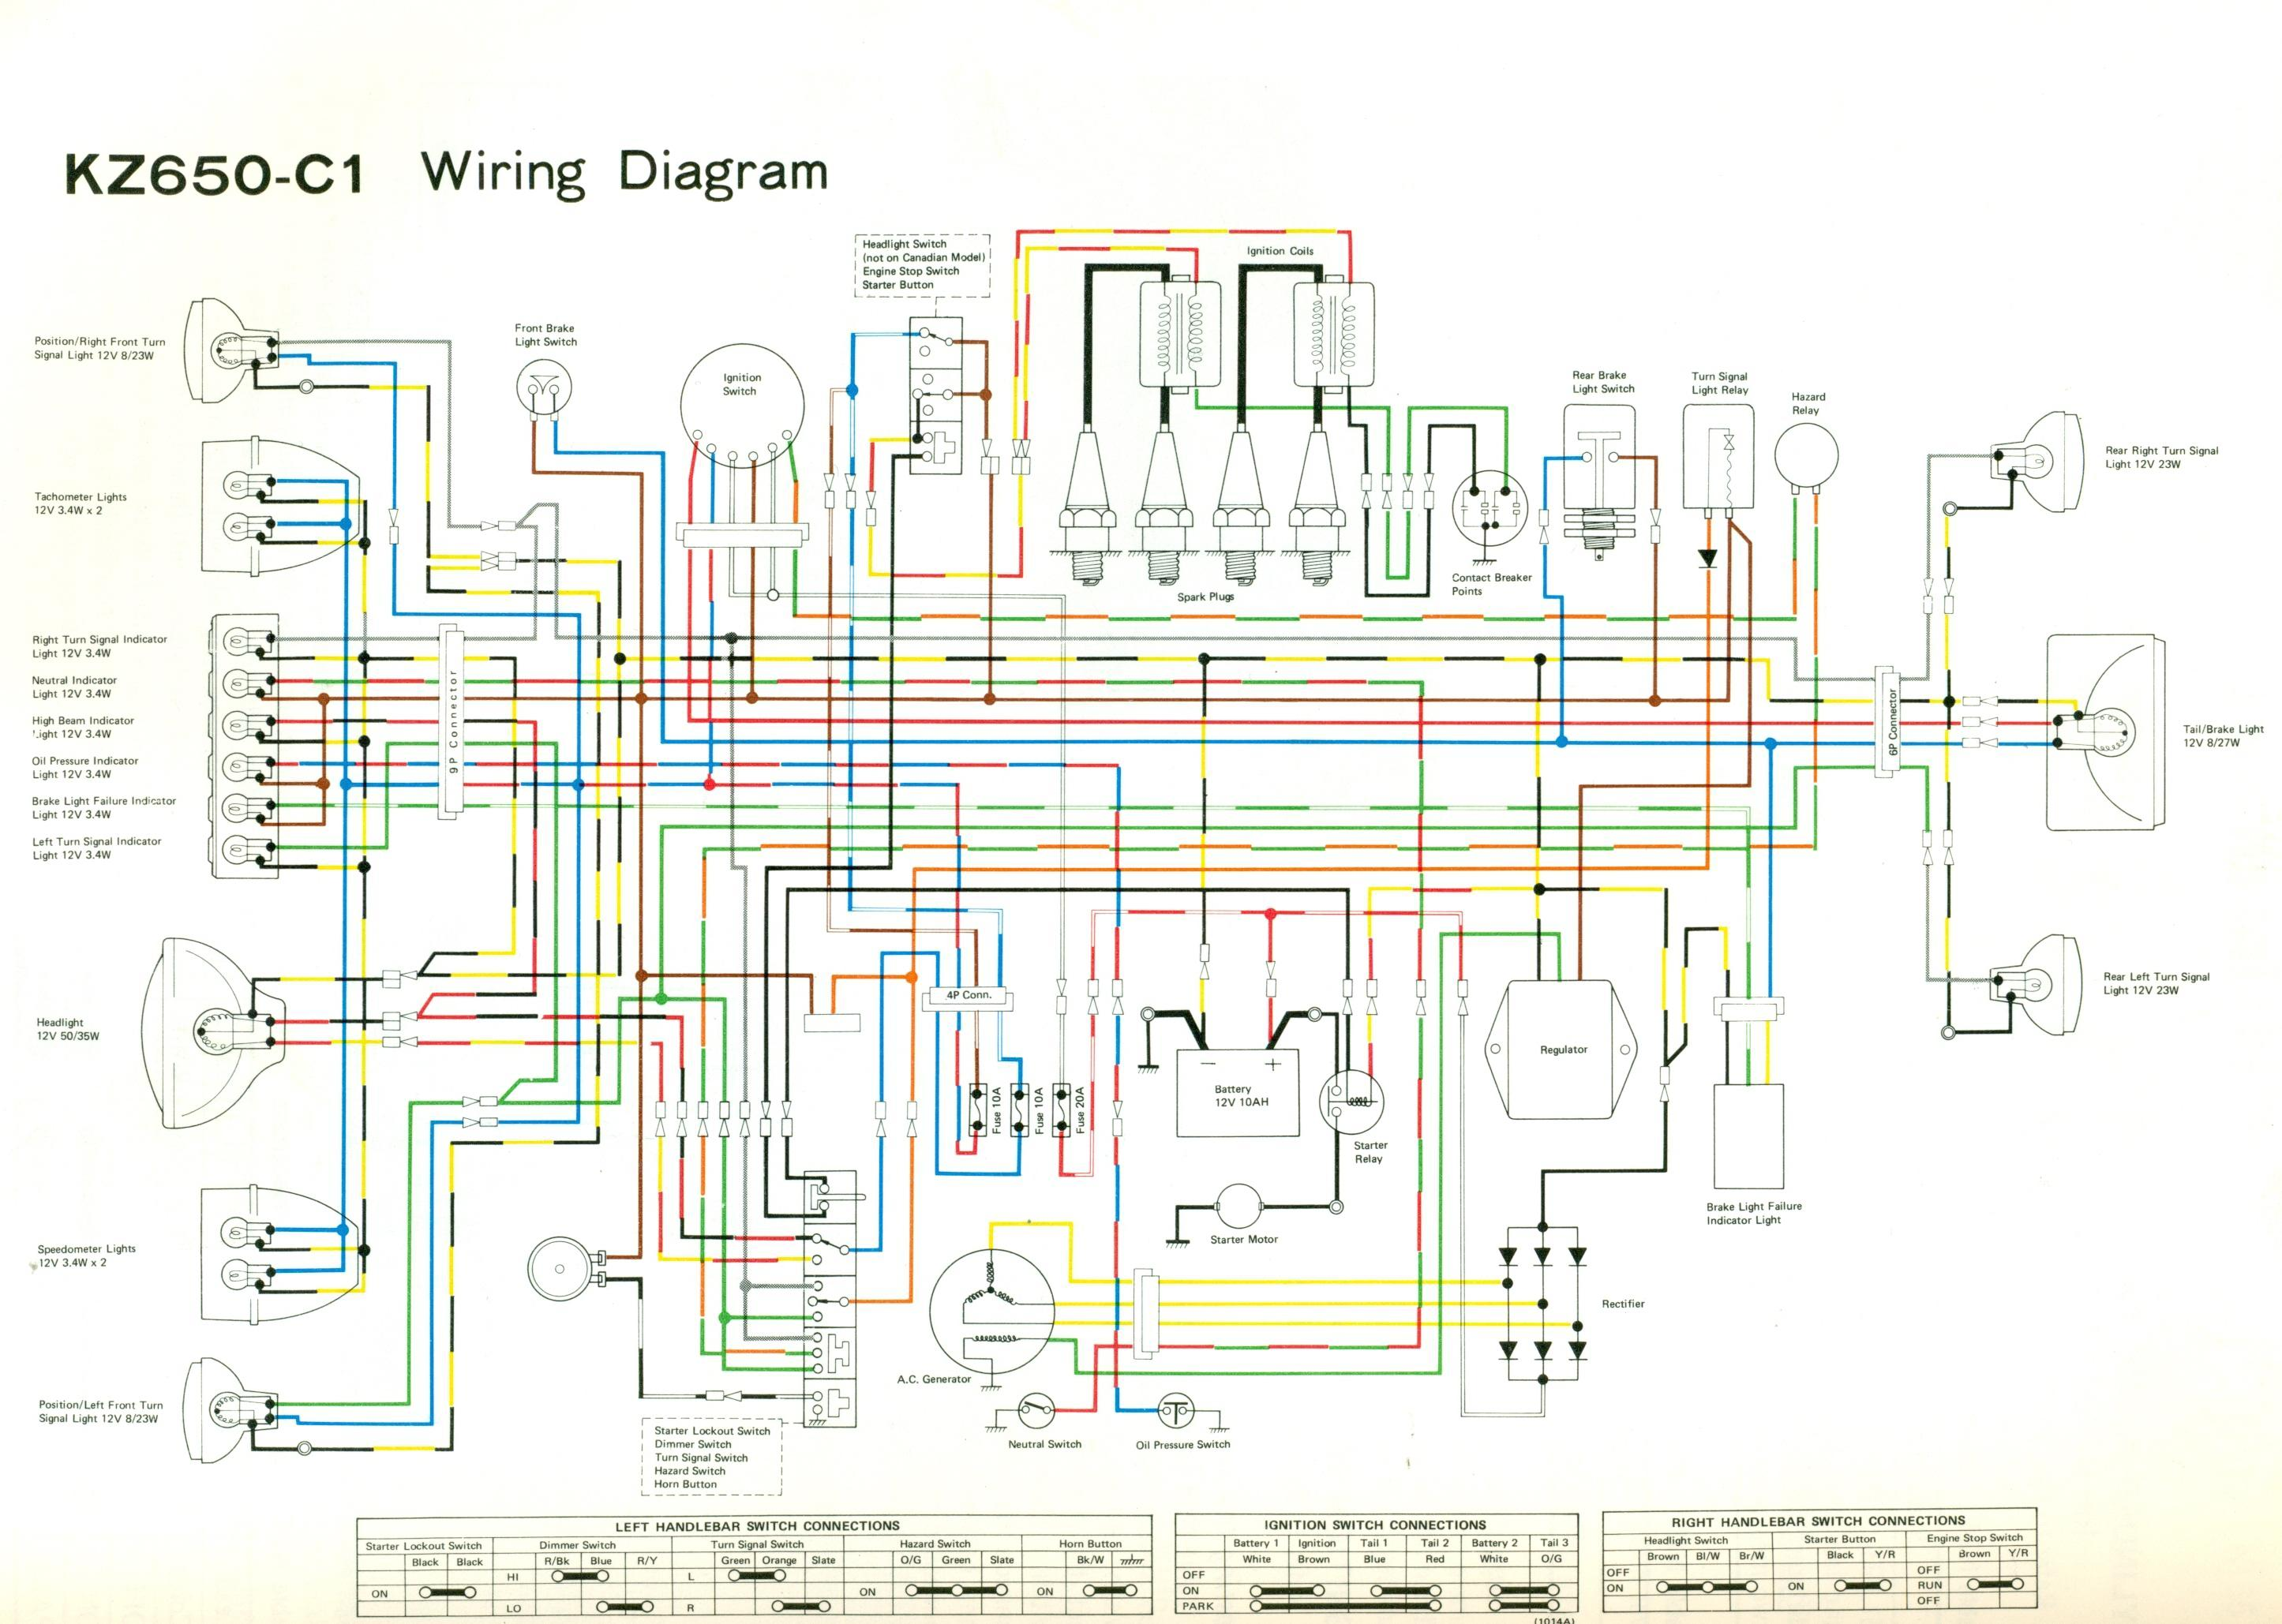 Wiring diagrams kz650 c jpg swarovskicordoba Choice Image